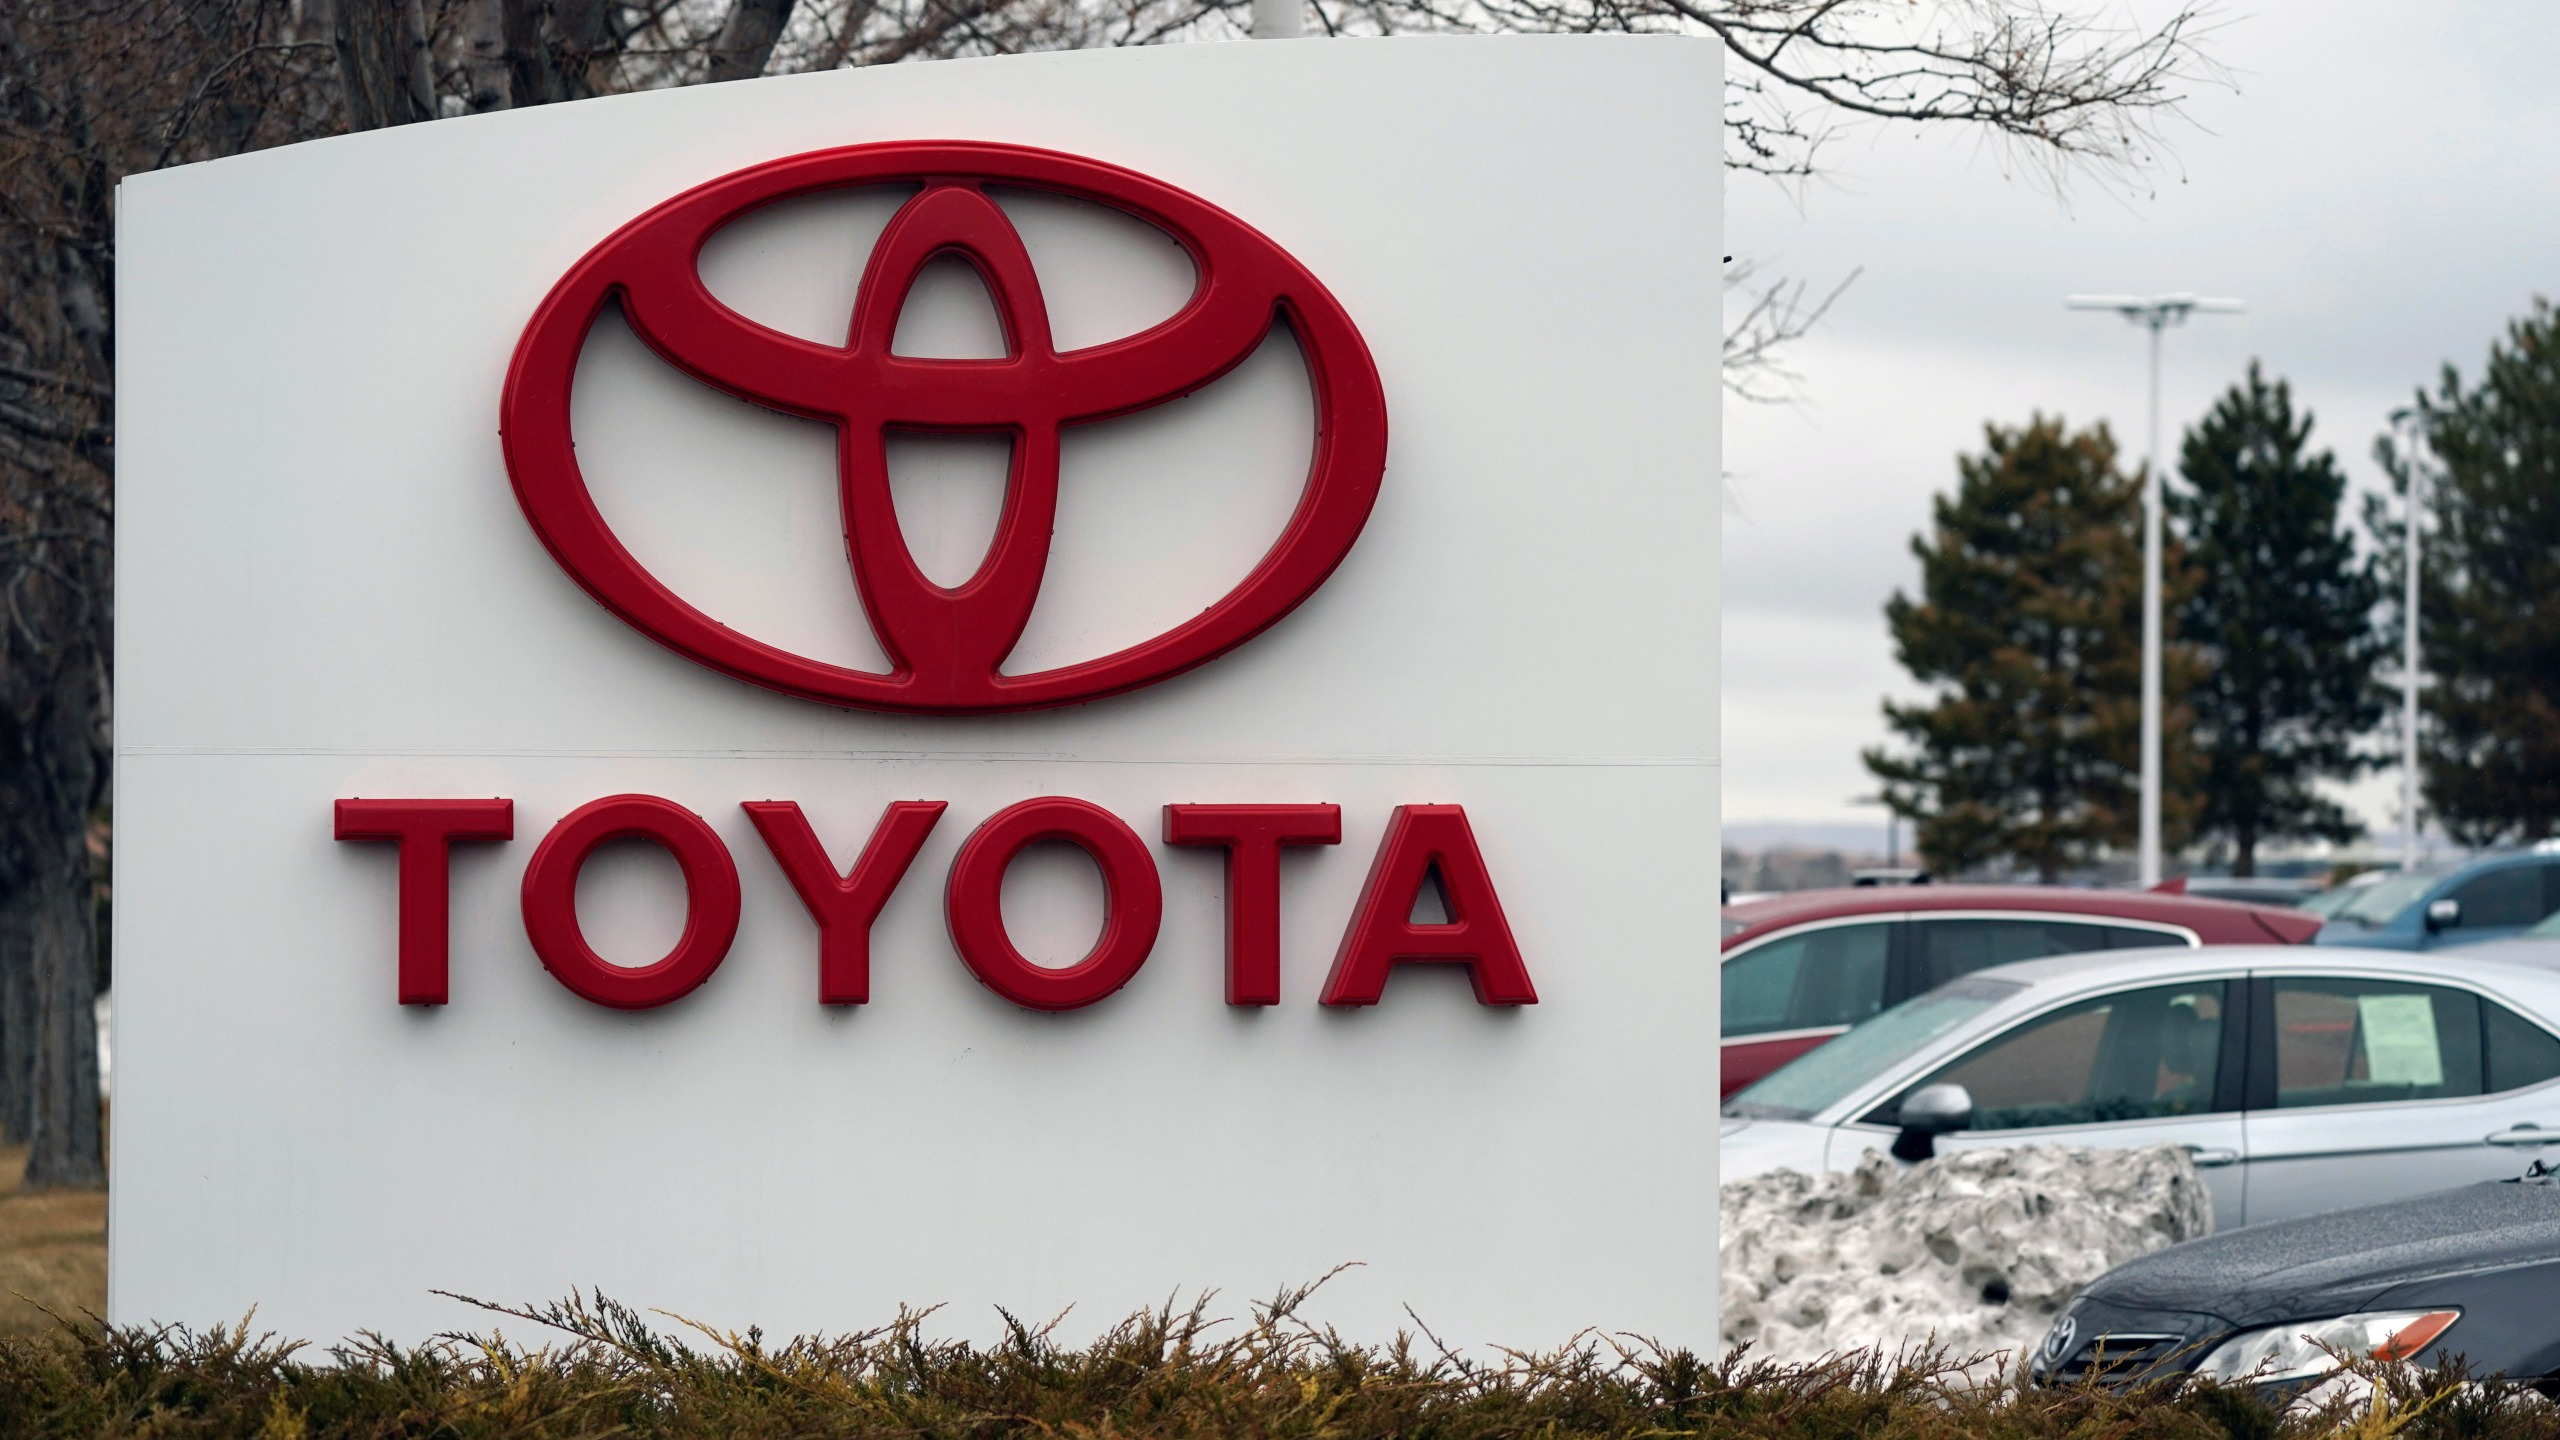 FILE - In this Sunday, March 21, 2021 file photo, The company logo adorns a sign outside a Toyota dealership in Lakewood, Colo. Toyota has reversed itself and says its political action committee will no longer contribute to legislators who voted against certifying Joe Biden's presidential election win. The move comes after a social media backlash over the contributions, with threats to stop buying Toyota vehicles. (AP Photo/David Zalubowski, File)